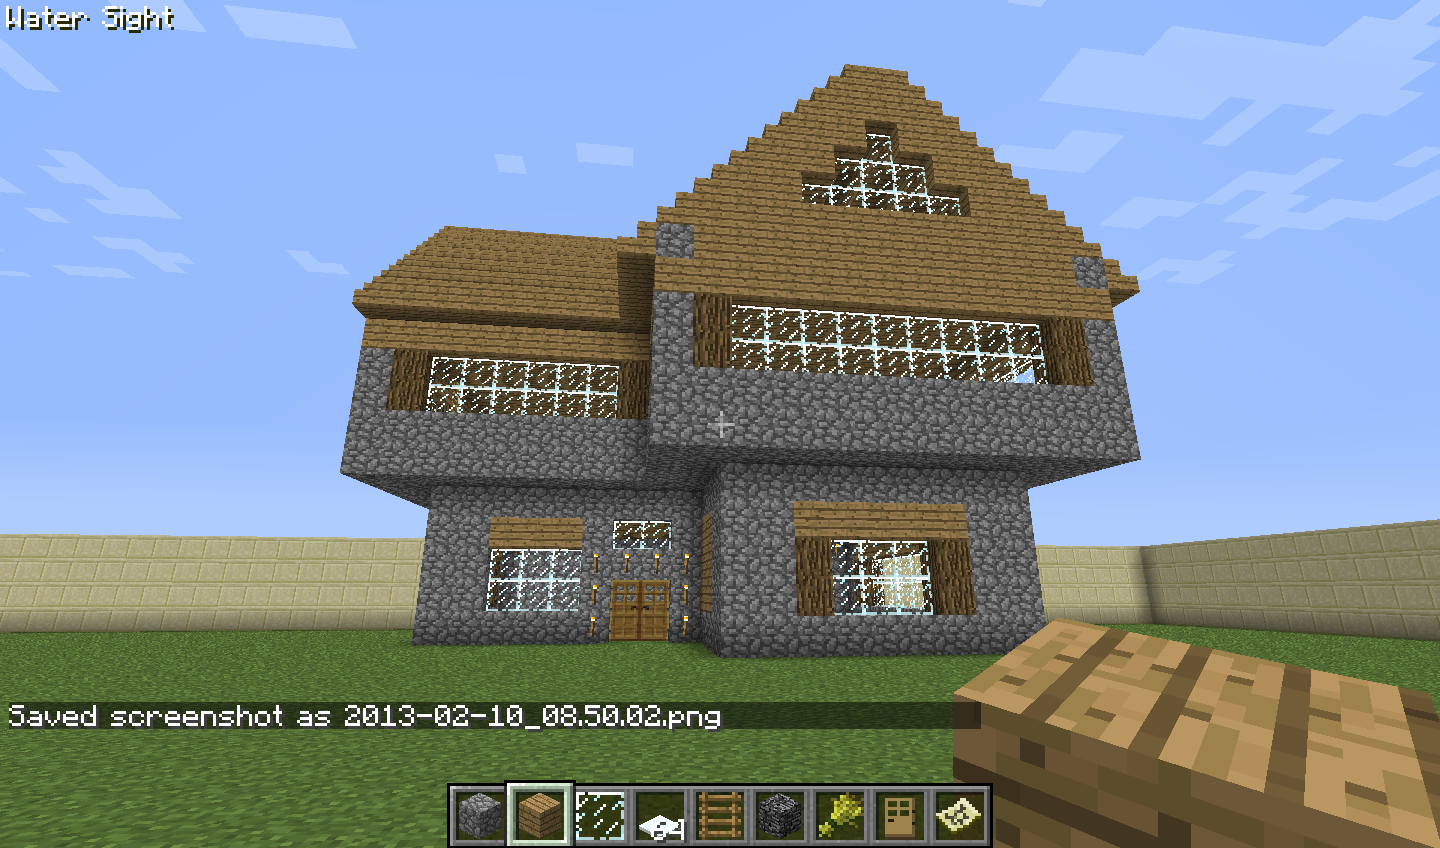 Mi casa en minecraft by idakyrie on deviantart for Casas minecraft planos